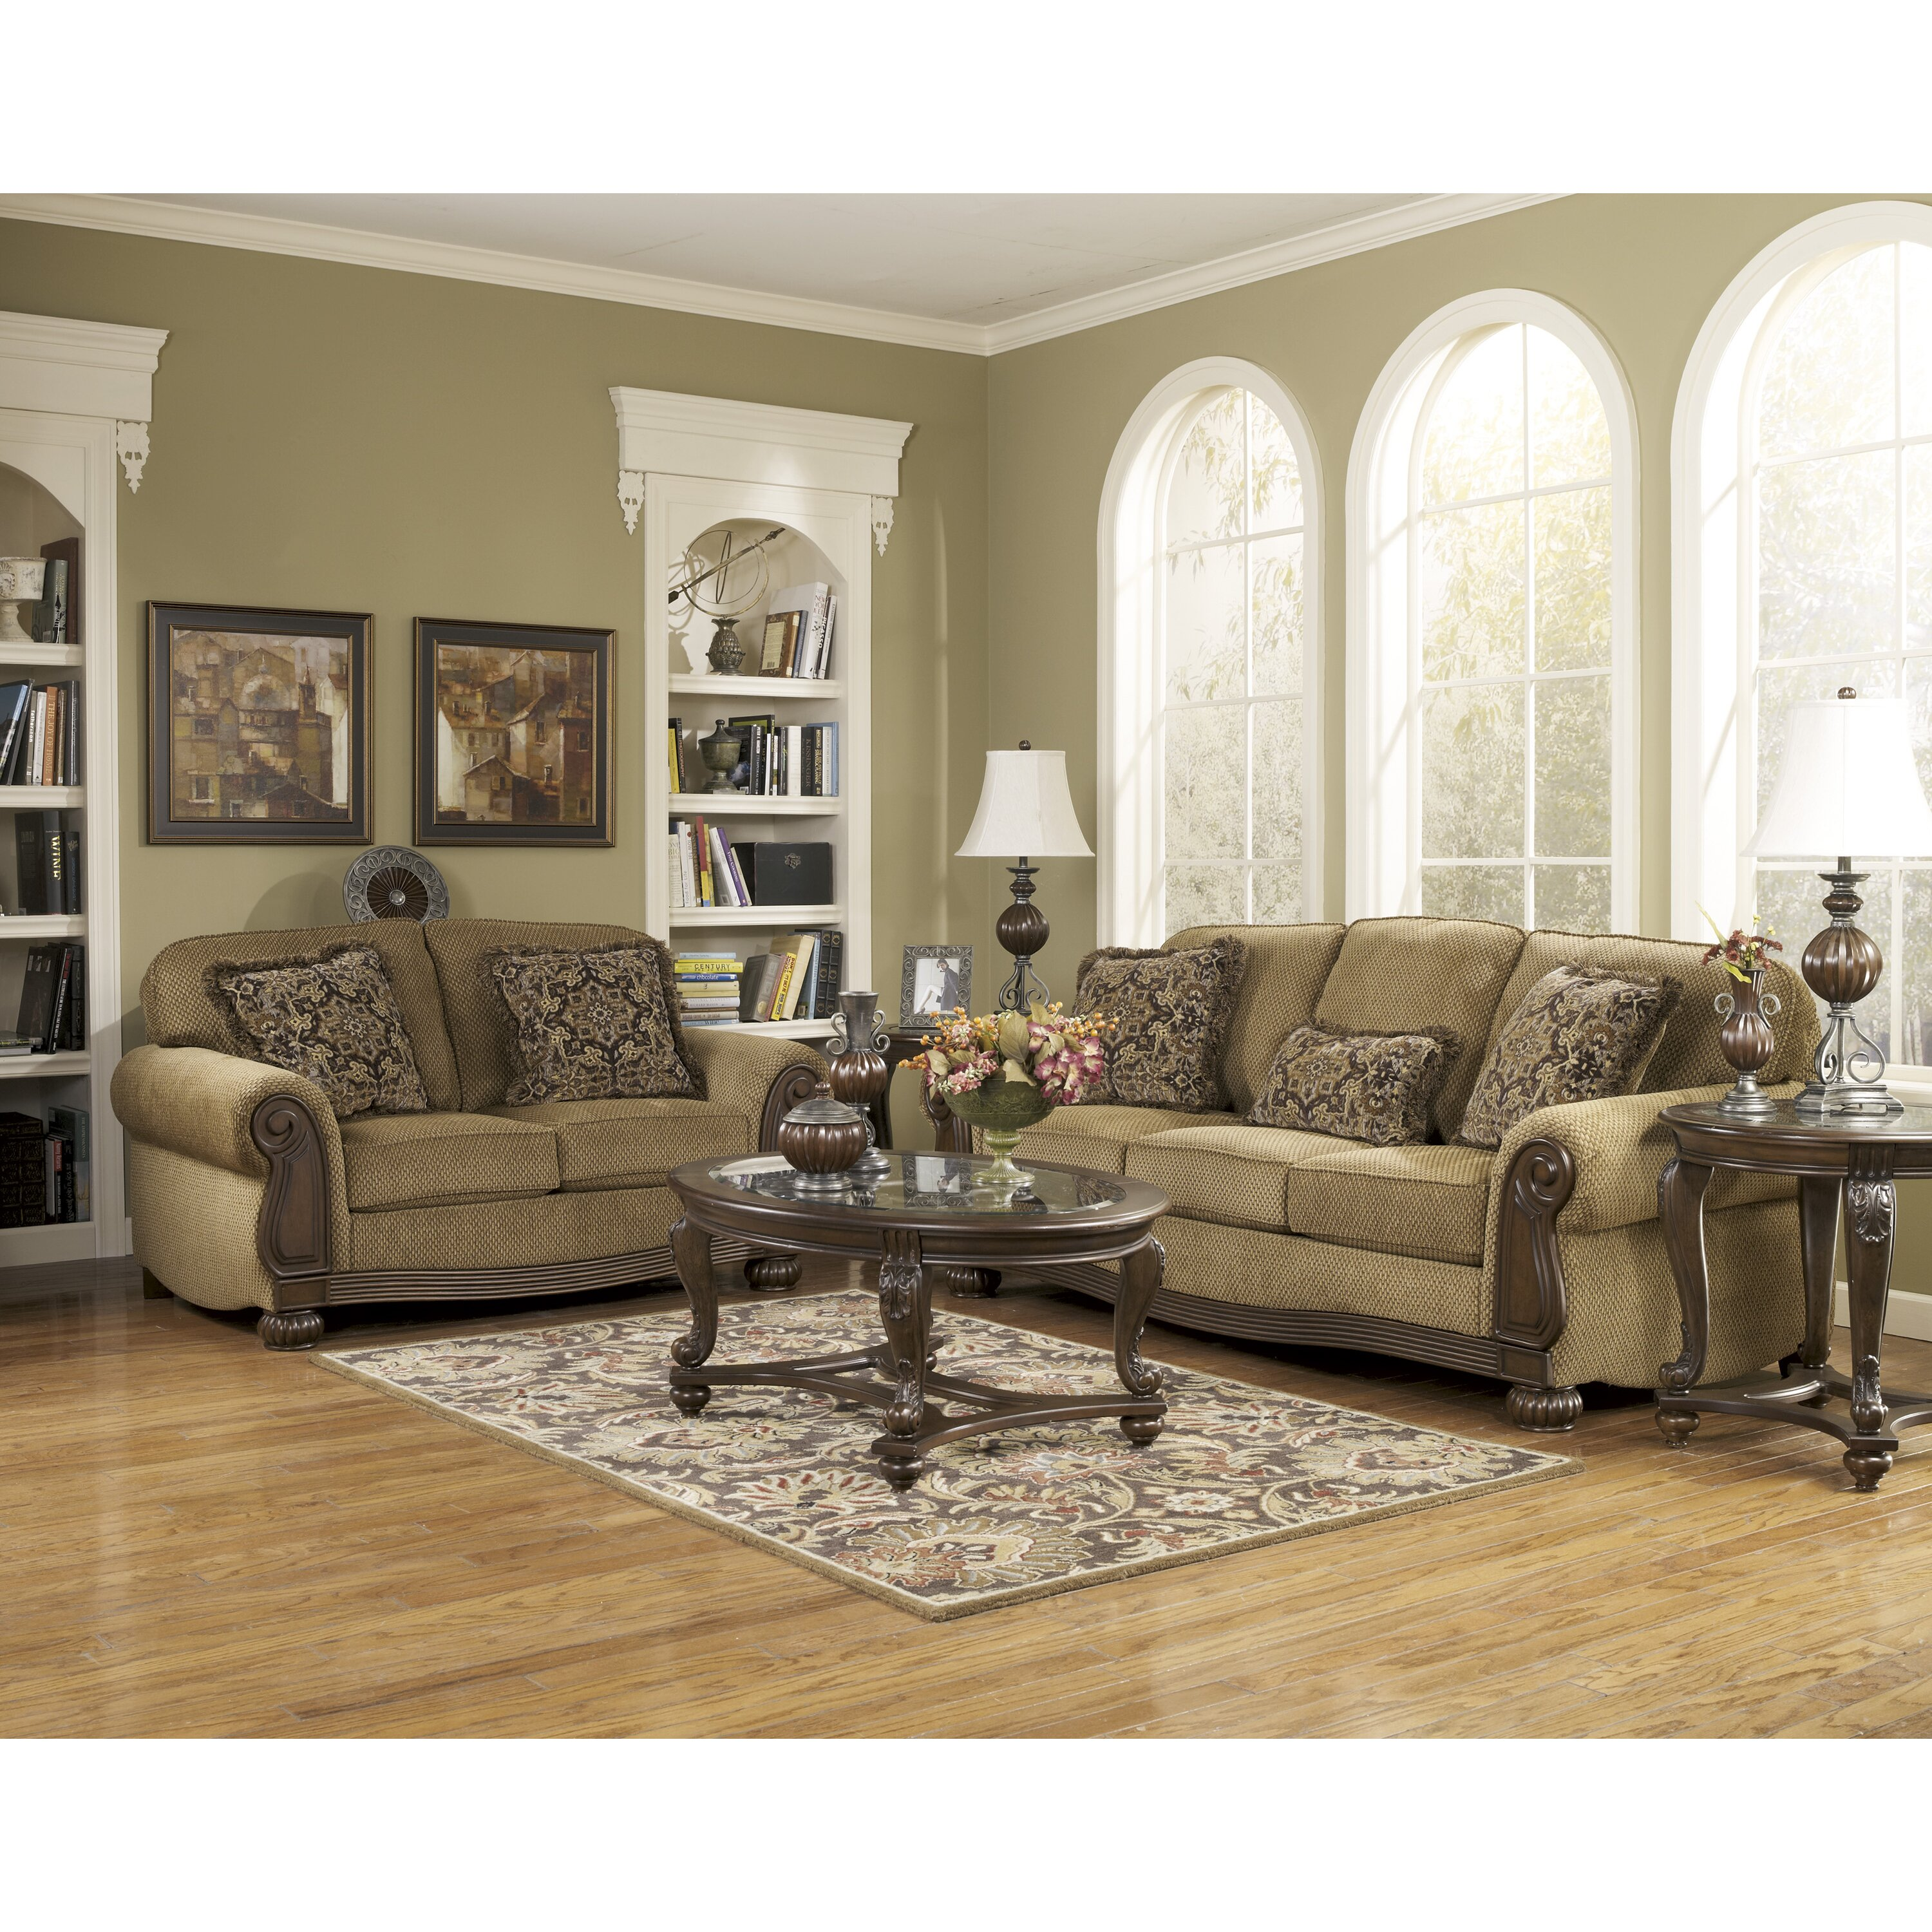 Ashley Furniture Living Room: Signature Design By Ashley Taylor Sofa & Reviews